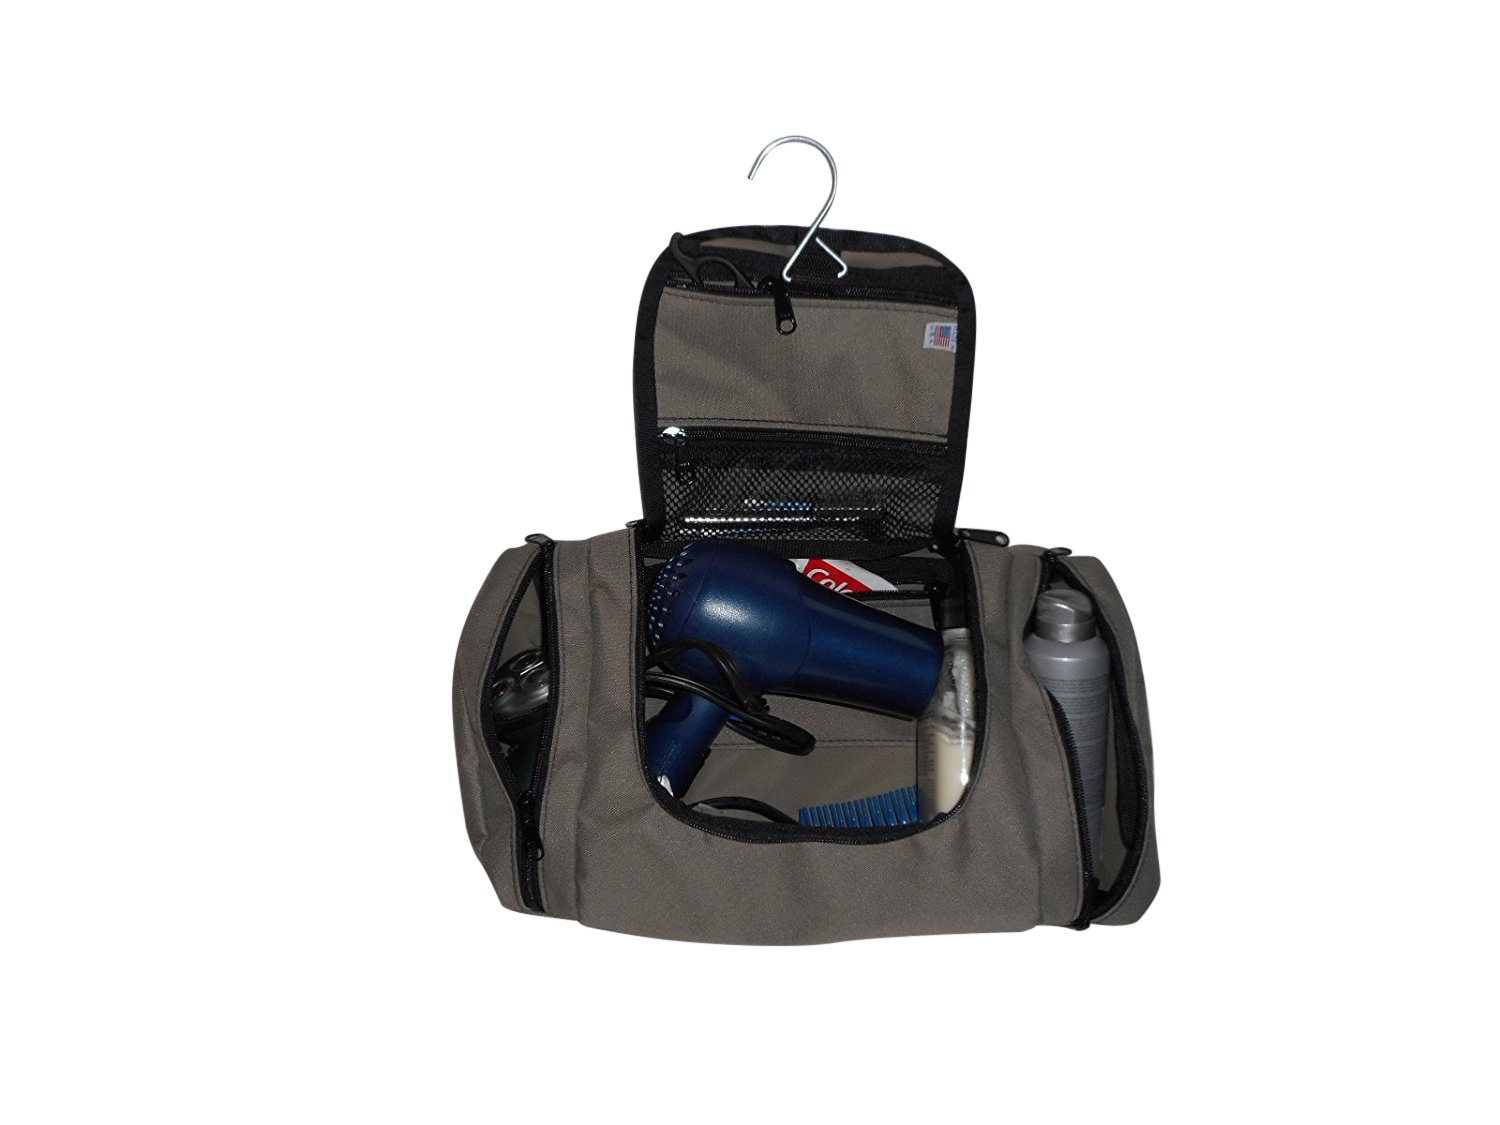 97c39faba8 Large hanging toiletry or shaving bag for all your essential